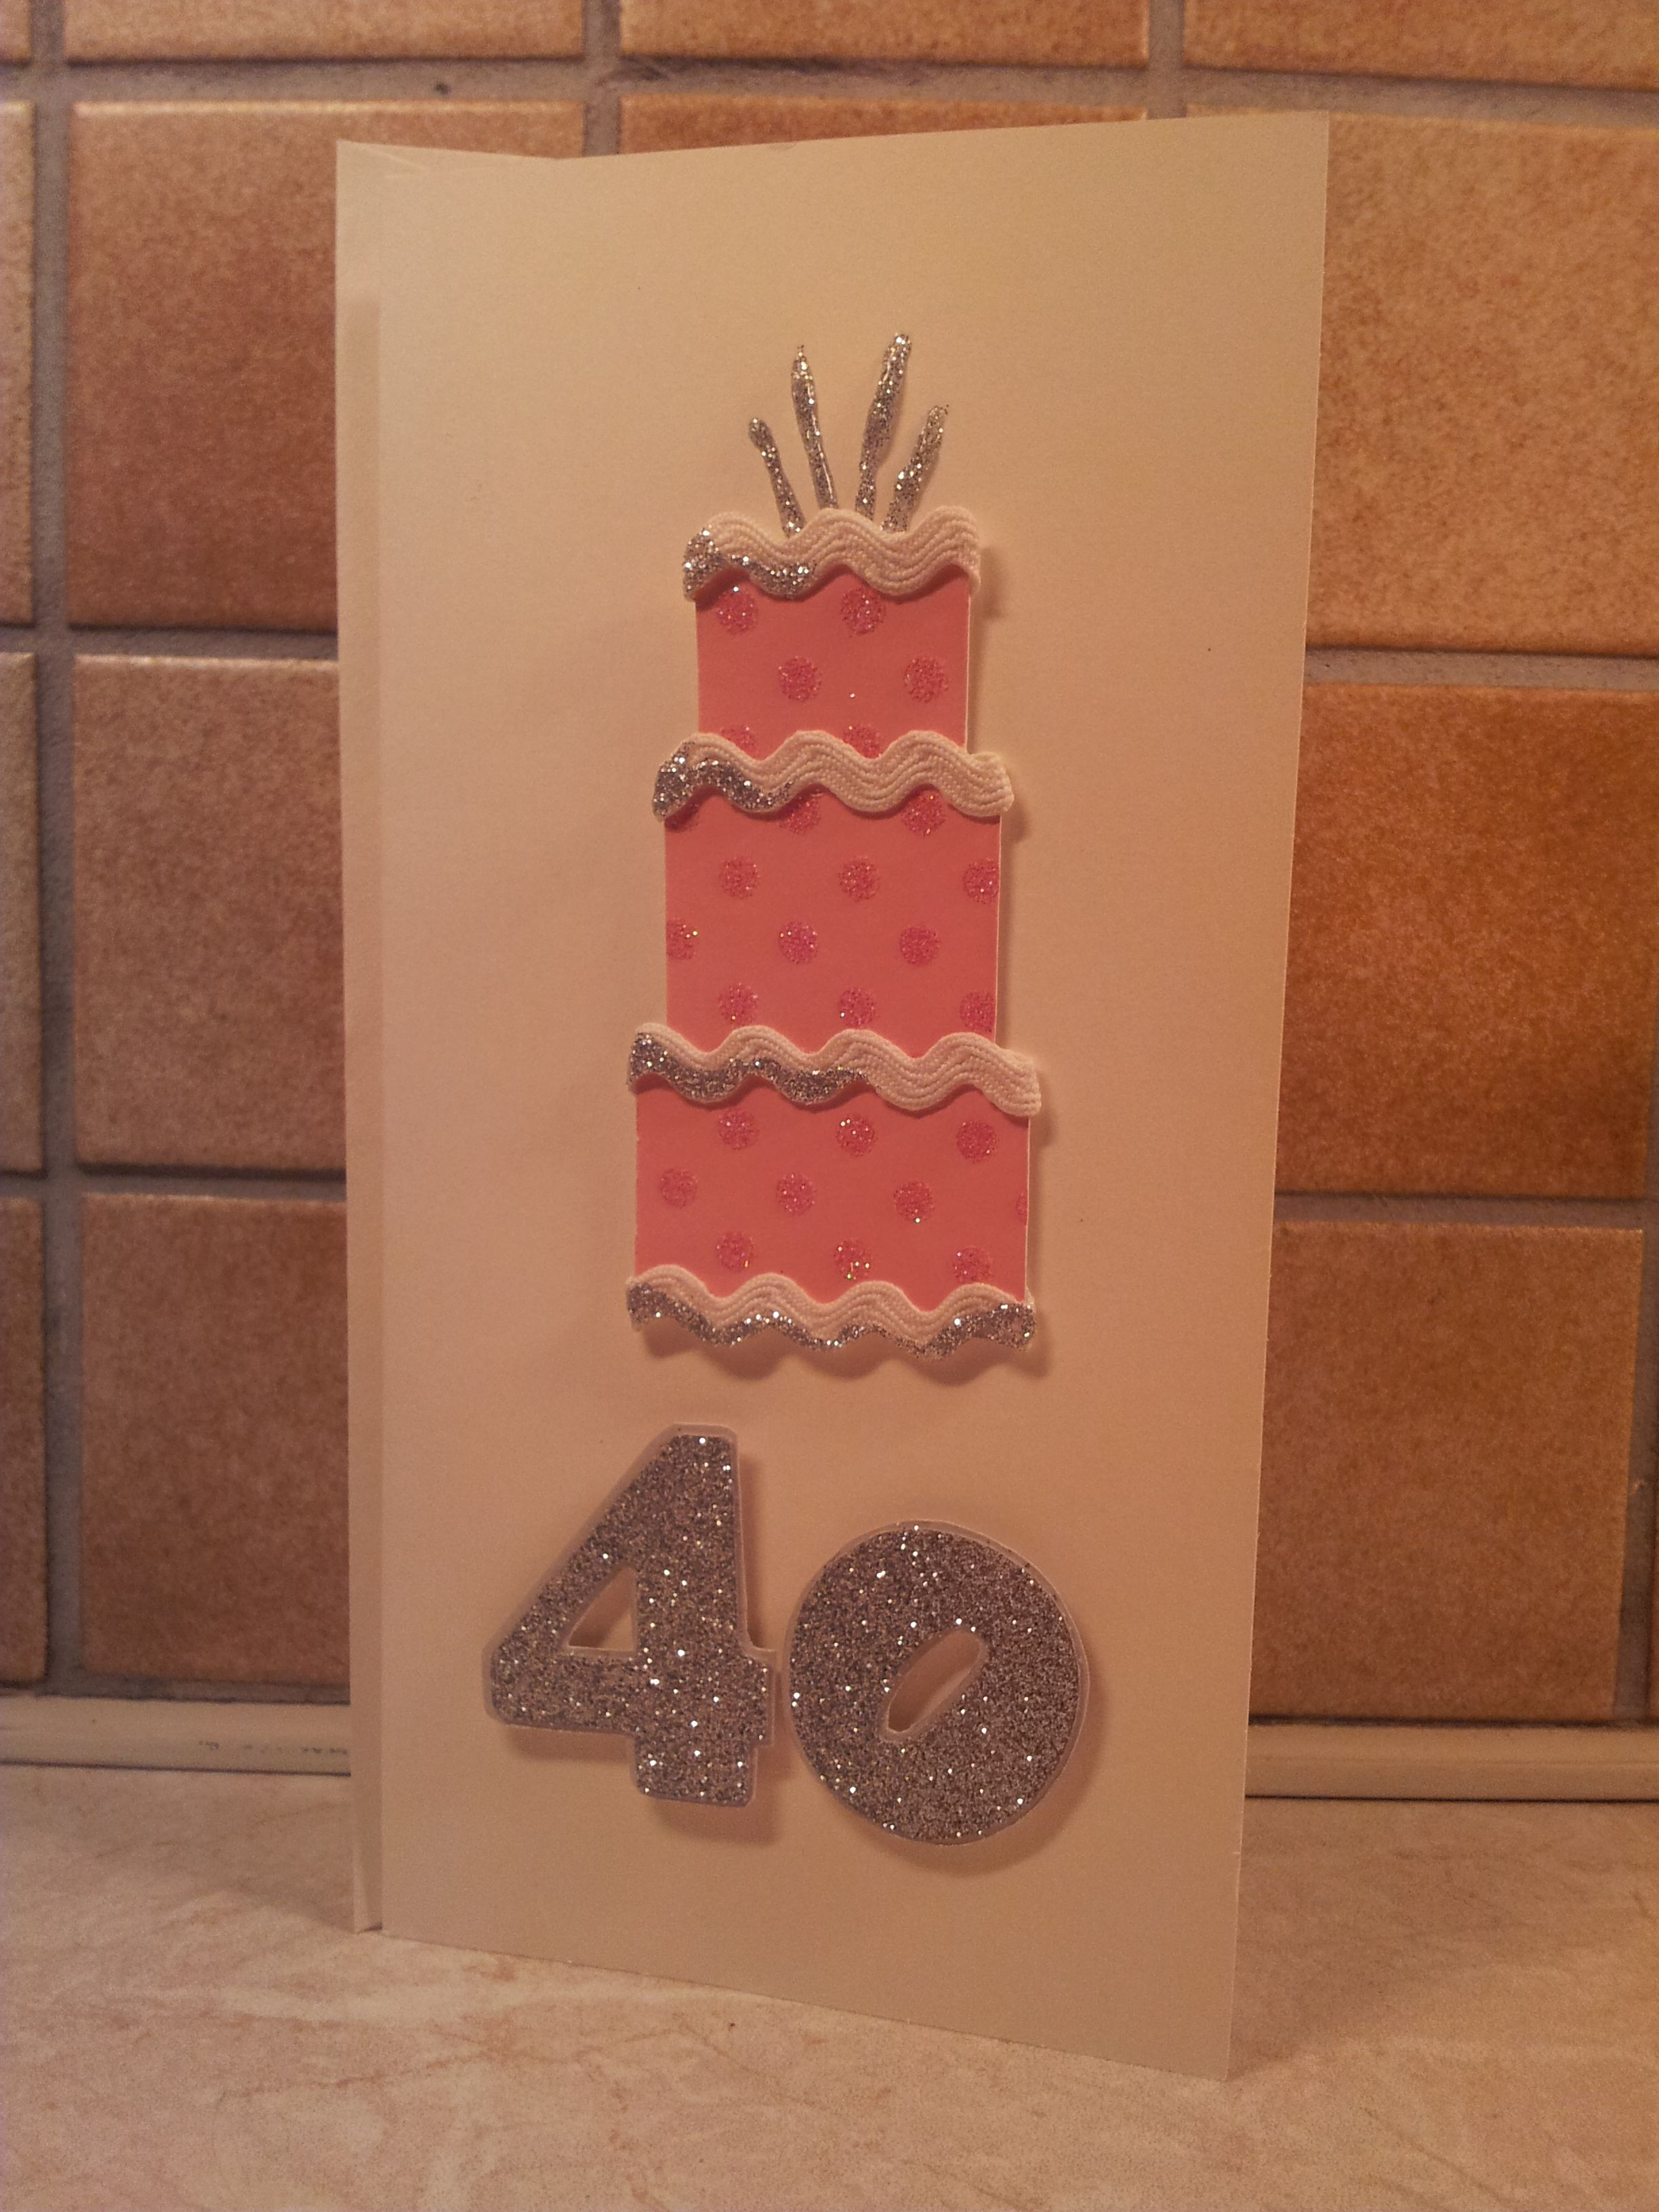 Card Making Ideas 40th Birthday Part - 37: 40th Birthday Card - Female